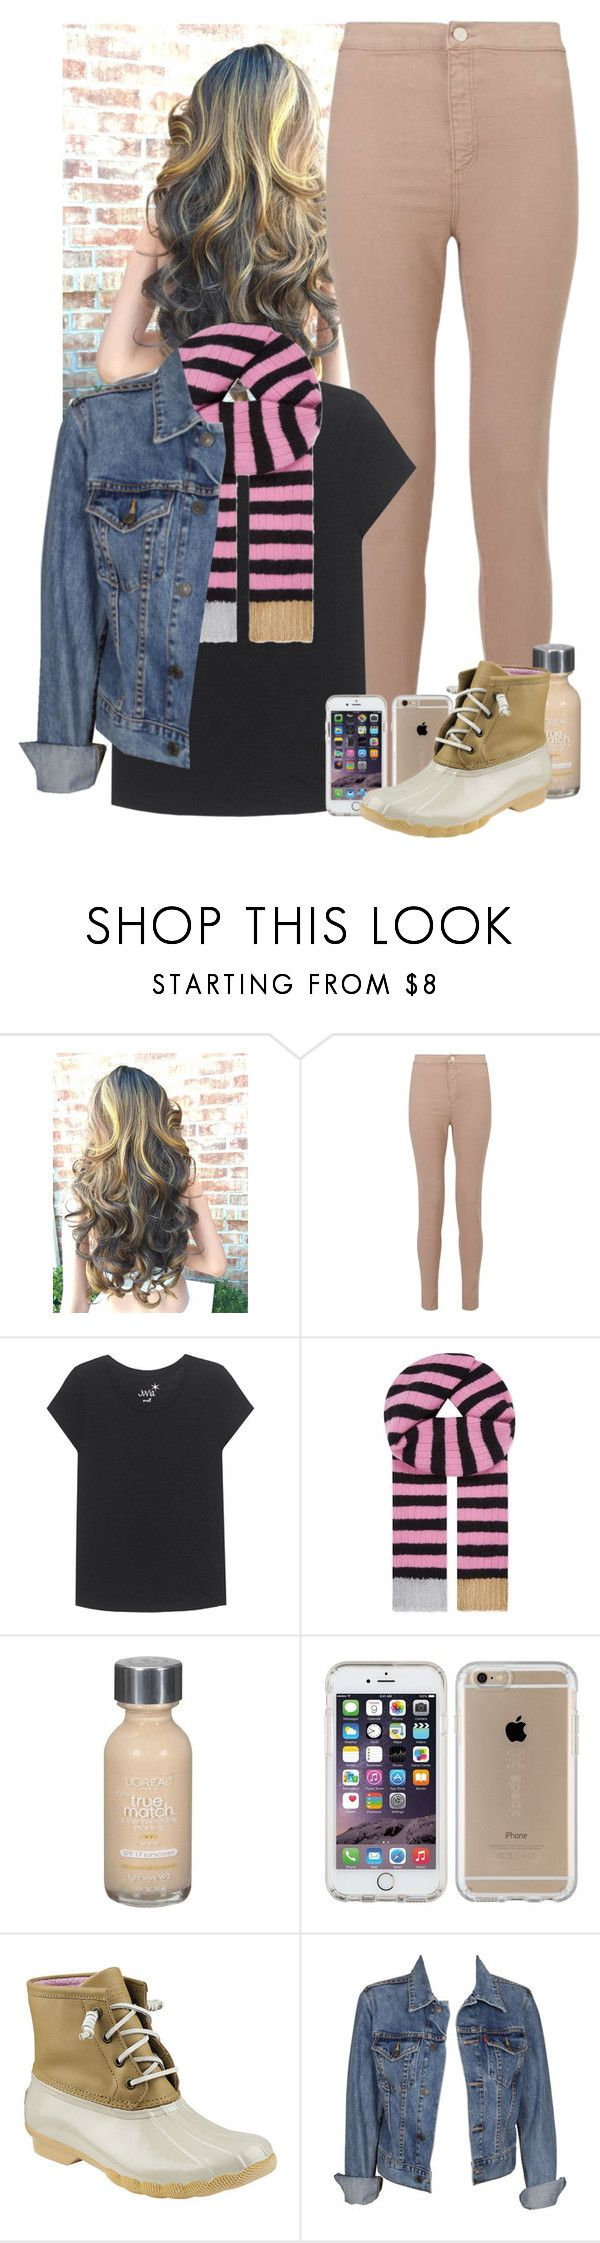 """Missing Connecticut..."" by sydneymellark ❤ liked on Polyvore featuring Miss Selfridge, Juvia, Gucci, L'Oréal Paris, Speck, Sperry, Levi's and winterwear"